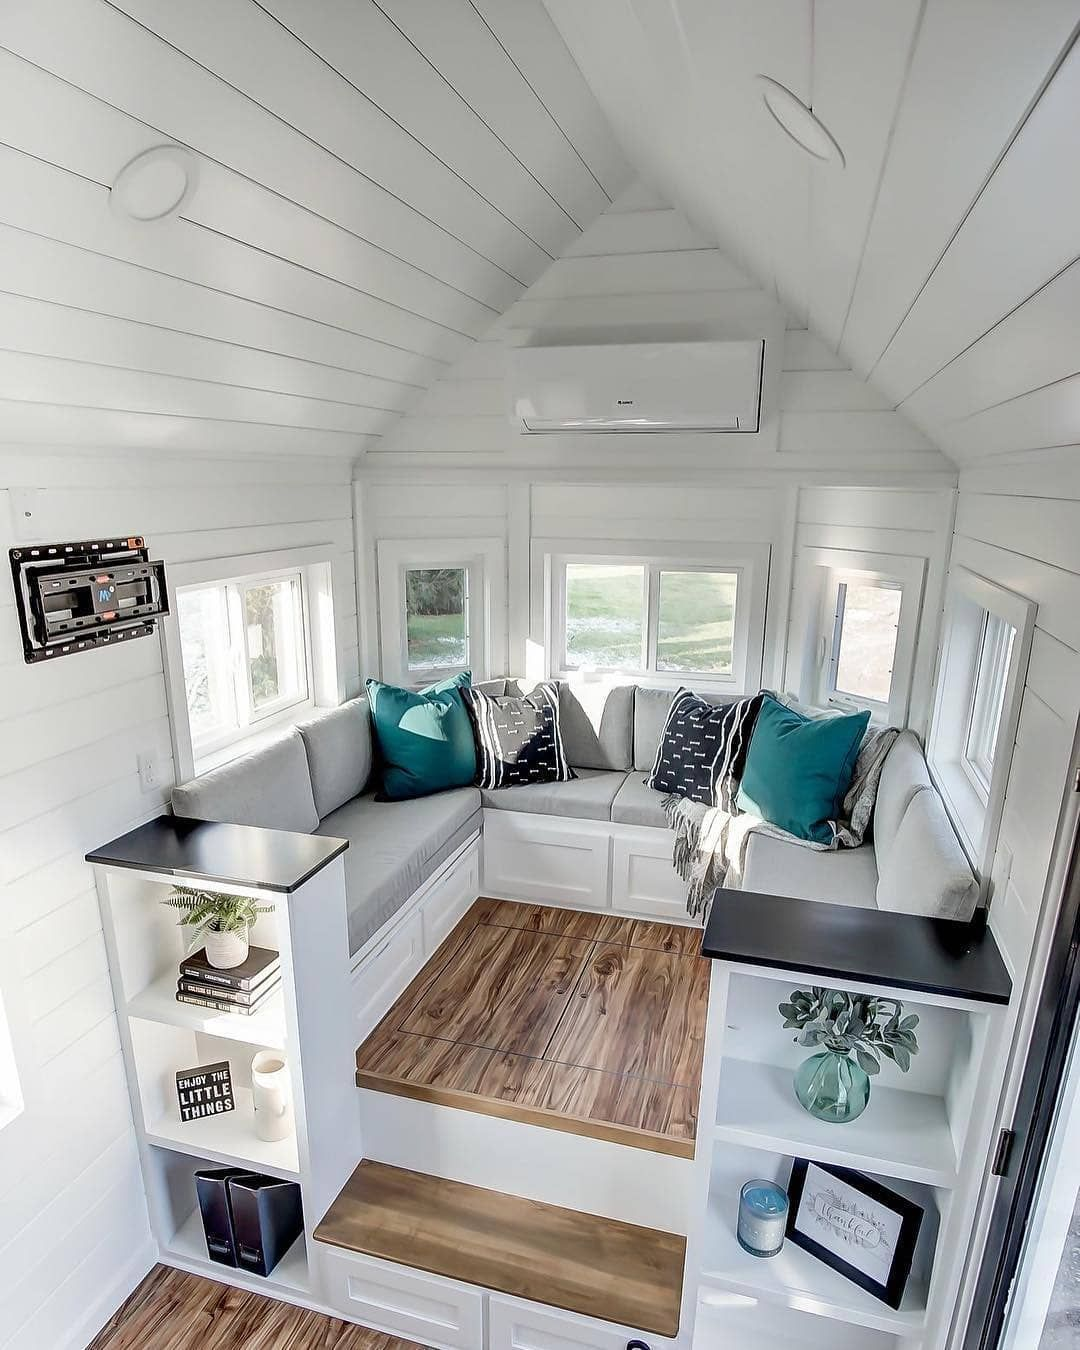 Tiny House Hunter On Instagram What Do You Think Of This Cute Sitting Area Is This A Tiny House Interior Design Tiny House Interior Tiny House Closet